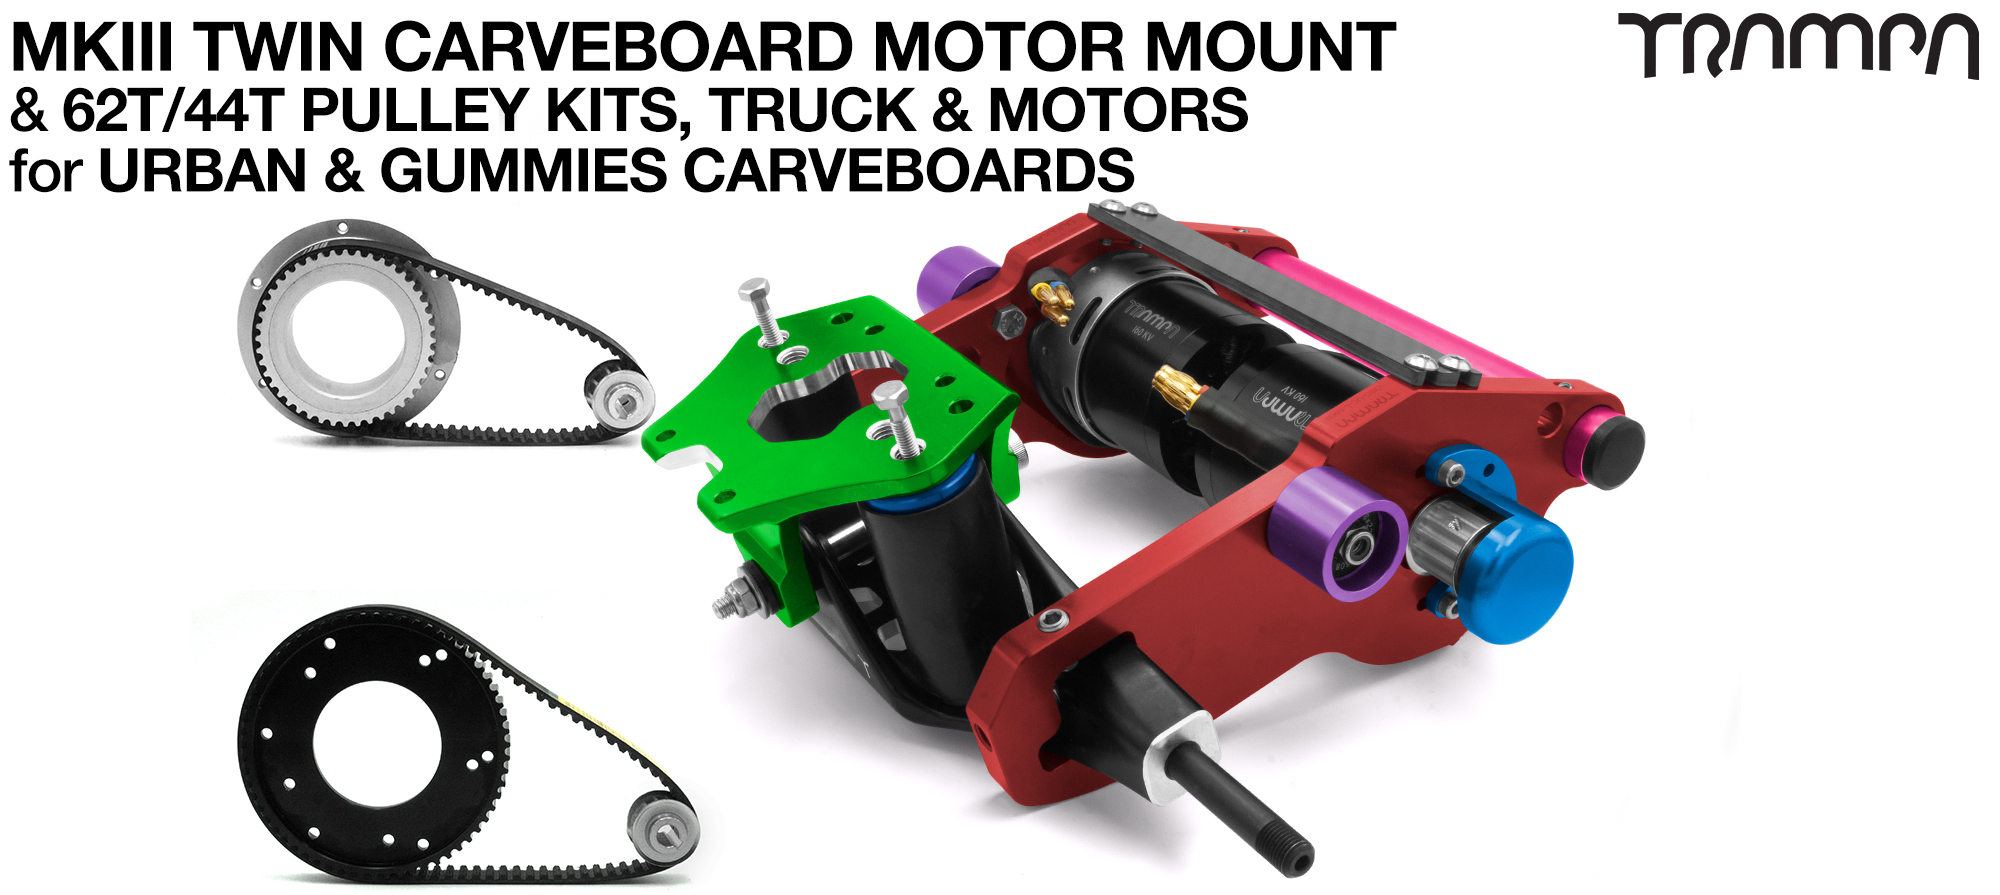 MkIII 2in1 CARVEBOARD Motormount On a TRUCK with 44 tooth GUMMY & 62 tooth URBAN Pulley kits & TRAMPA Motor - TWIN